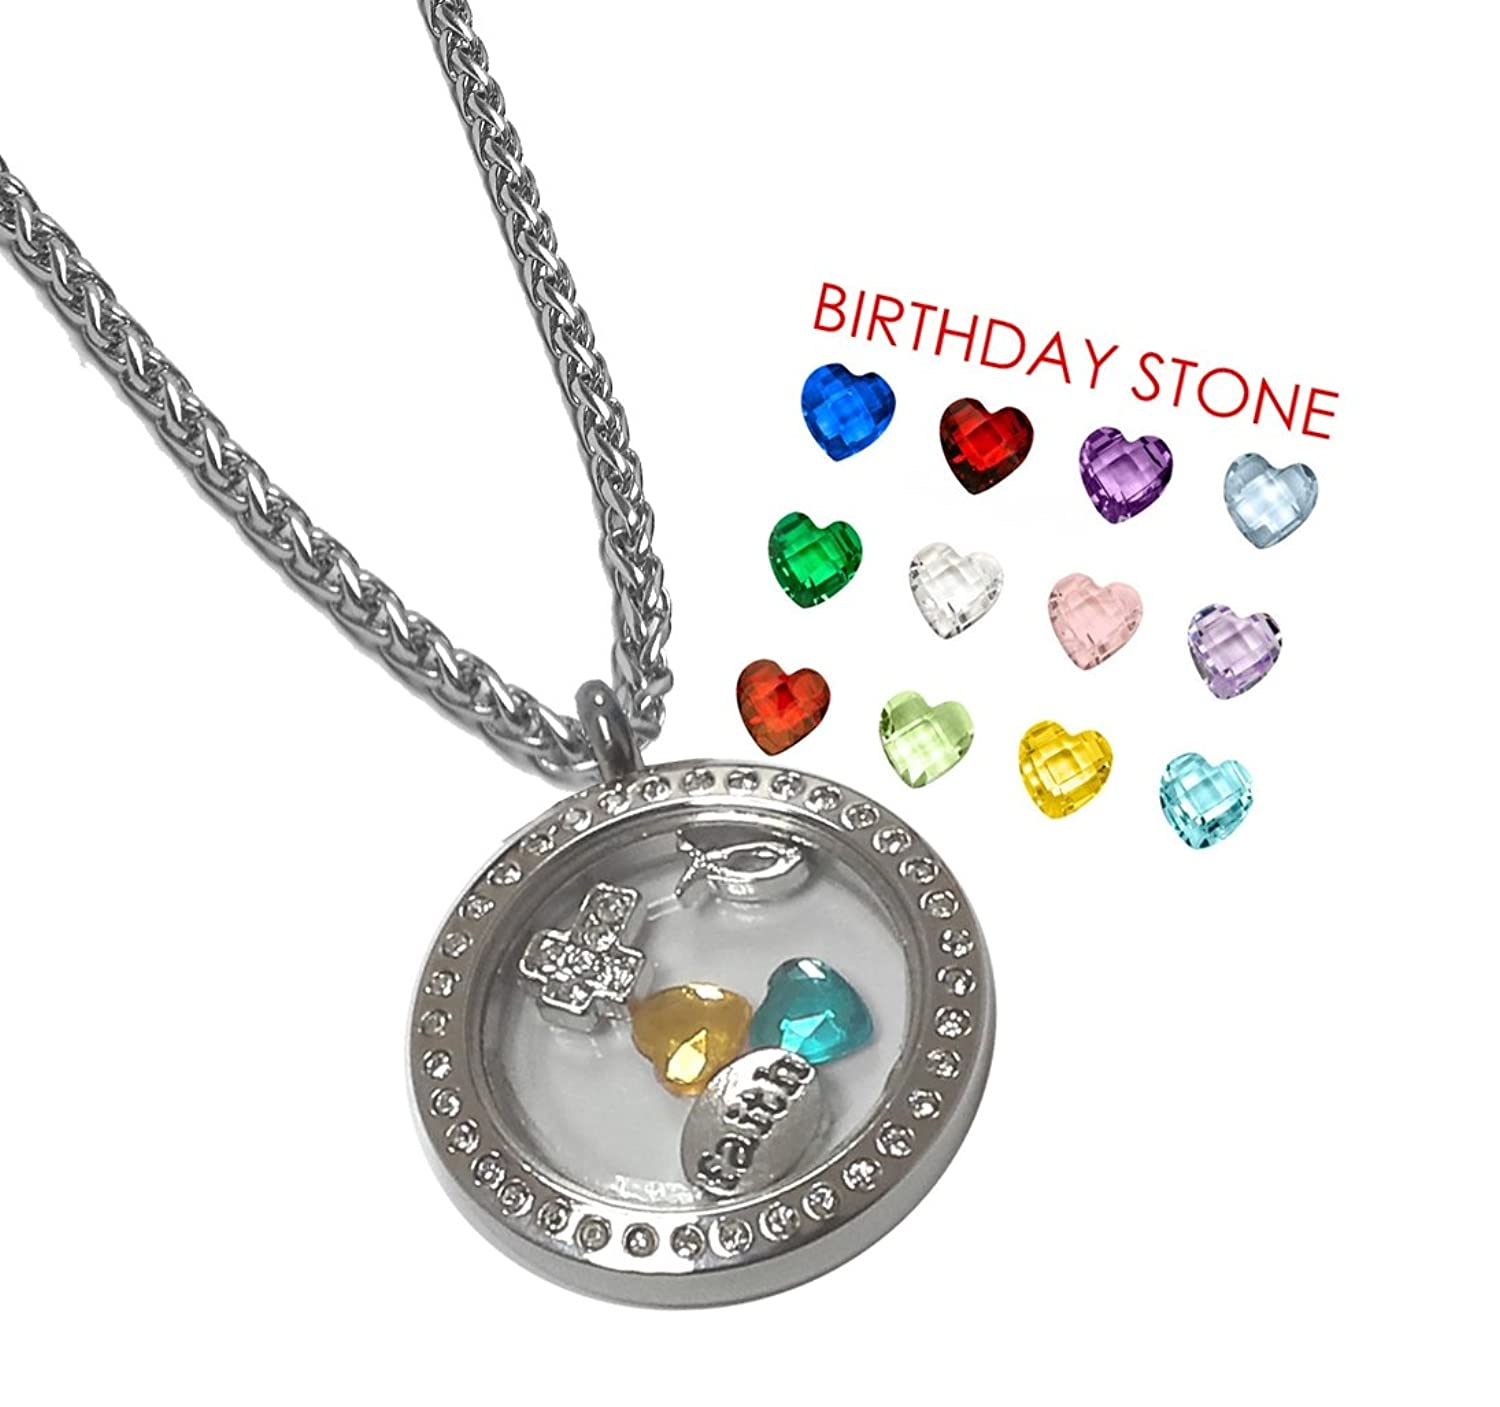 lockets silver charm necklaces necklace shipping ball plated charms gold fish gift memory love item origami chain vials s living heart pendants free valentine locket rainbow glass floating day